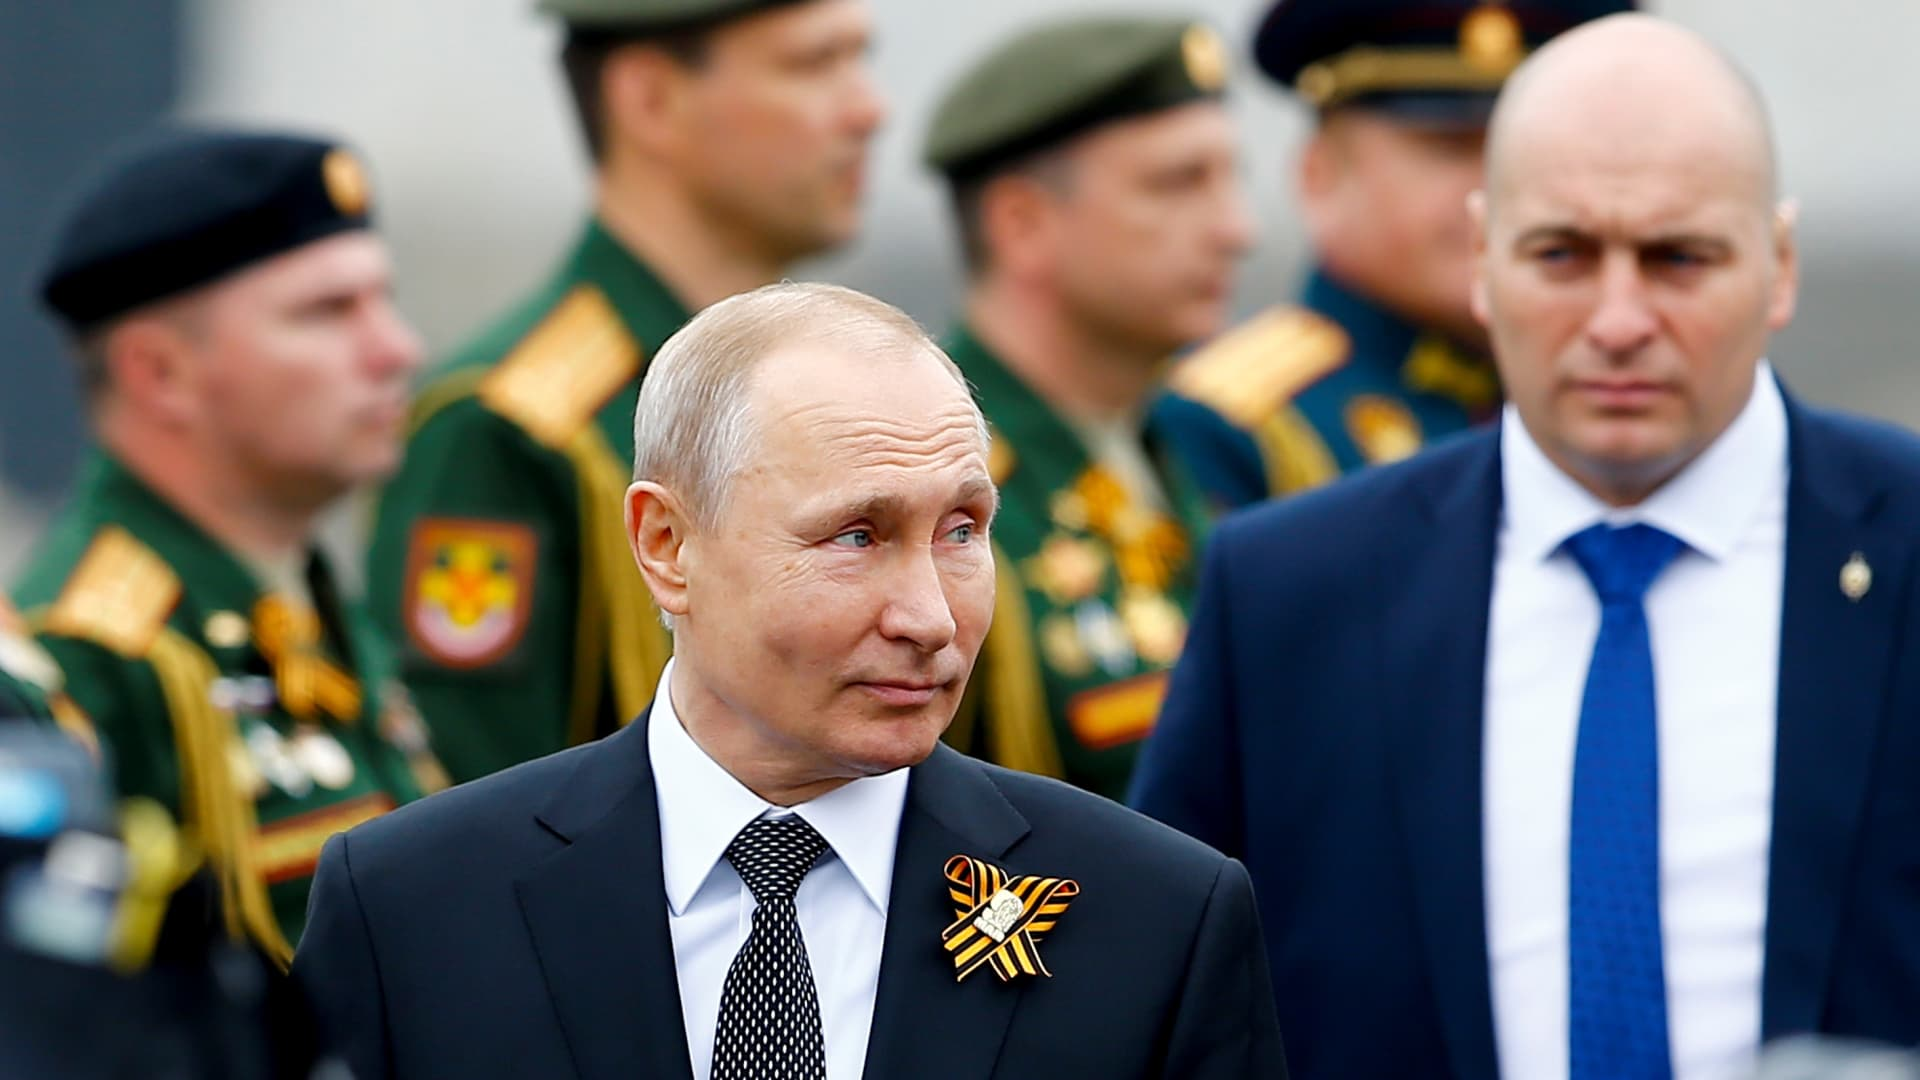 Russian President Vladimir Putin attends a Victory Day military parade marking the 74th anniversary of the end of World War II.